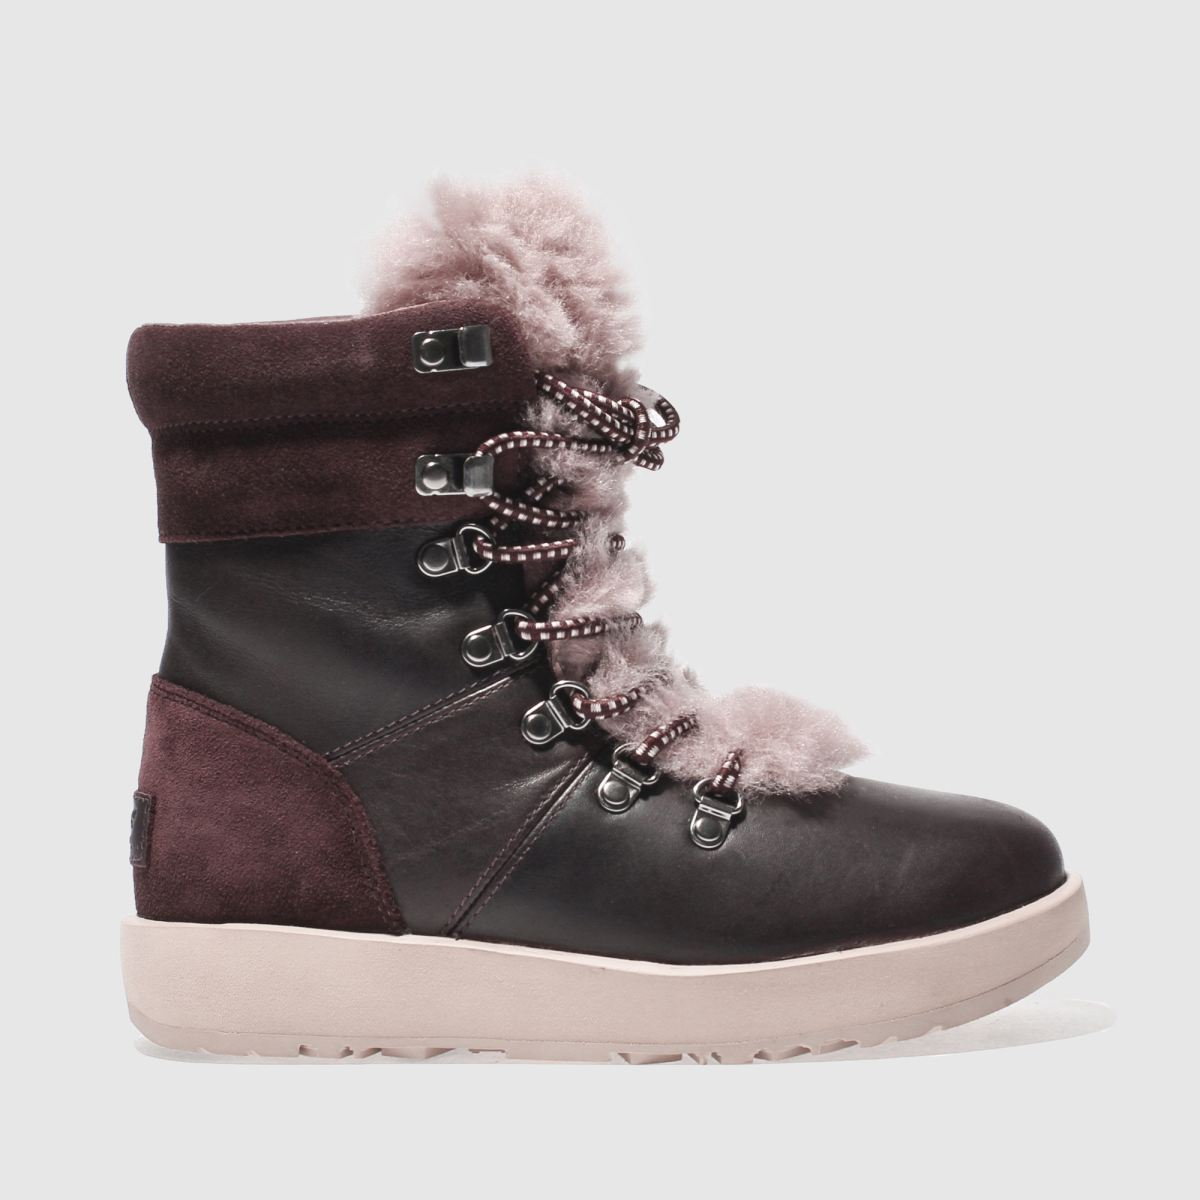 ugg burgundy viki waterproof boots